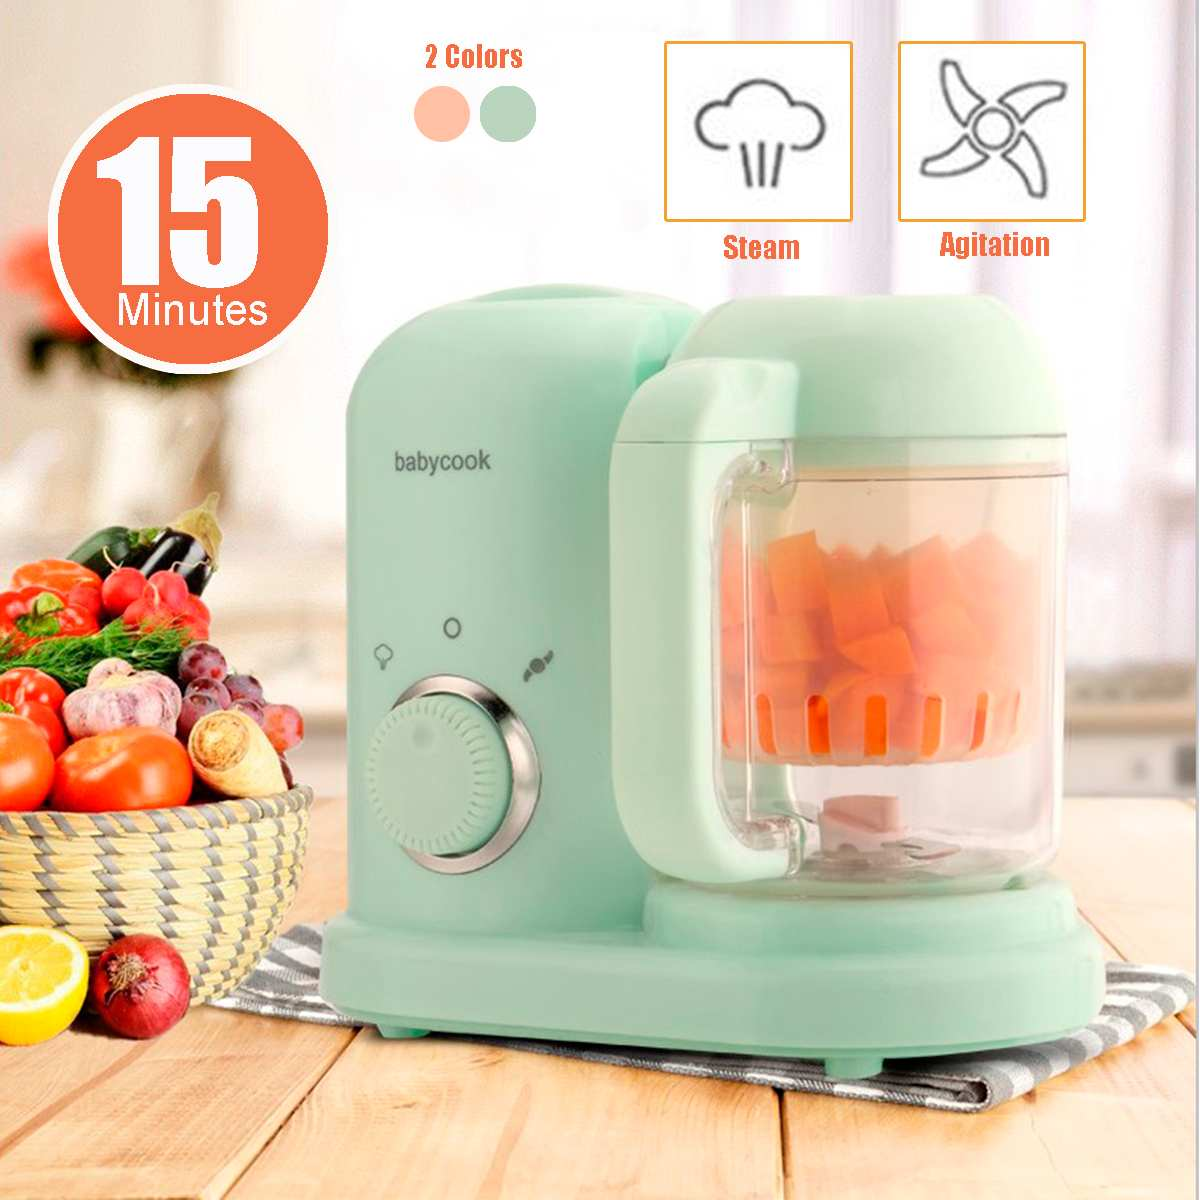 Warmtoo Baby Food Cooking Maker Steamer 220V 50Hz Multifunction Mixing Grinder Blenders Processor 190ml 2 Colors Shatterproof